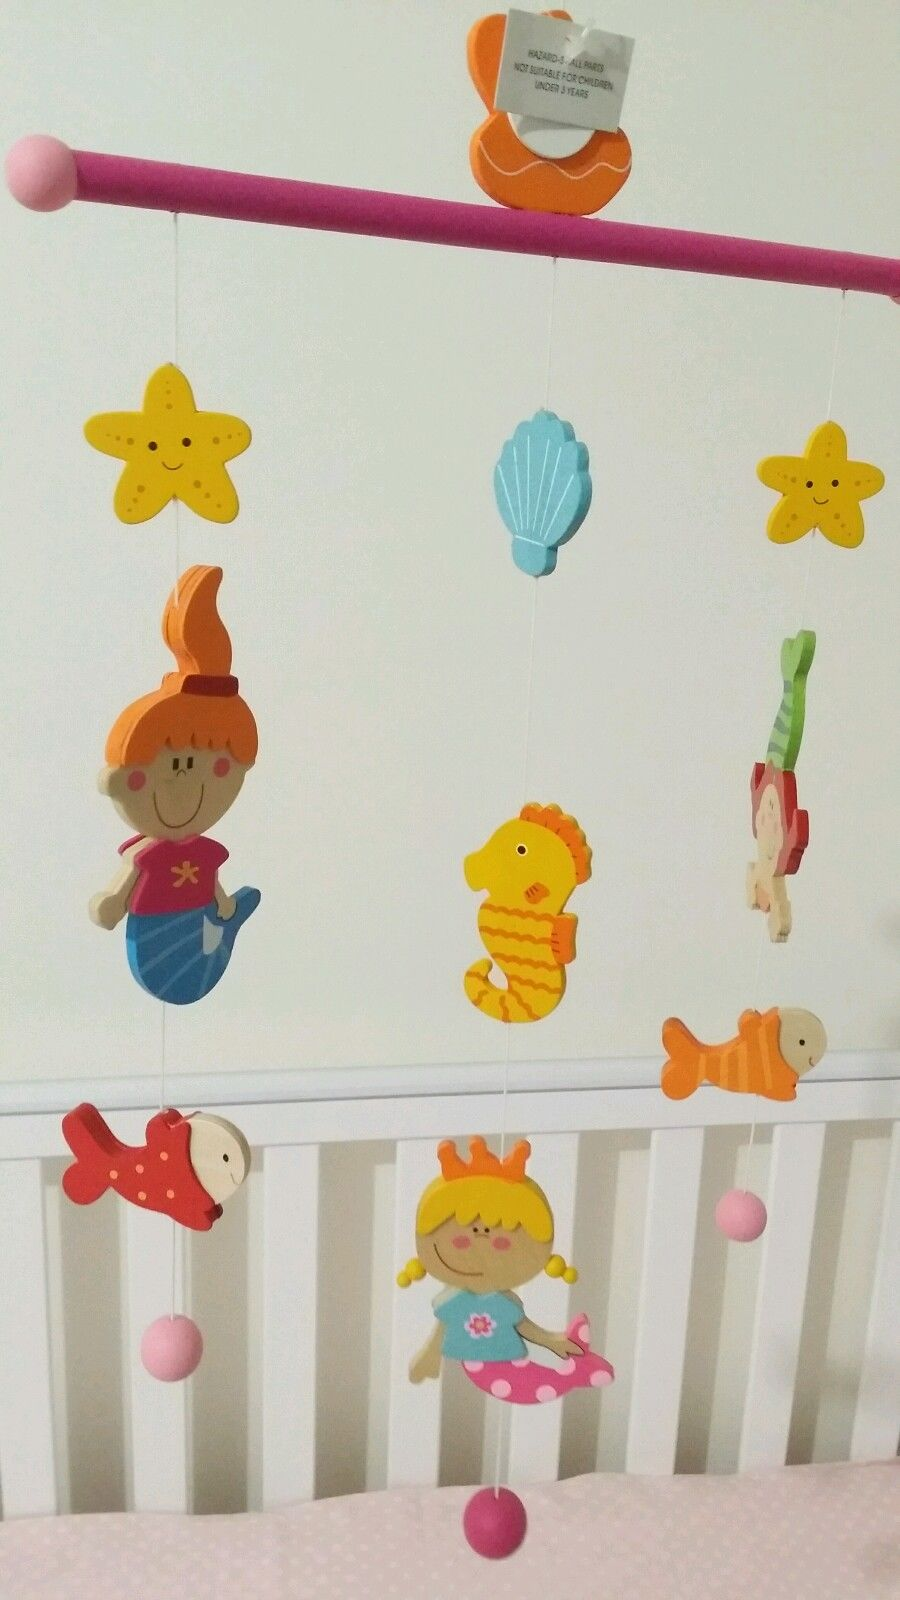 Wooden Baby Mobile Wooden Baby Mobile For Cot Crib Nursery Decor Baby Development Newborn Gift